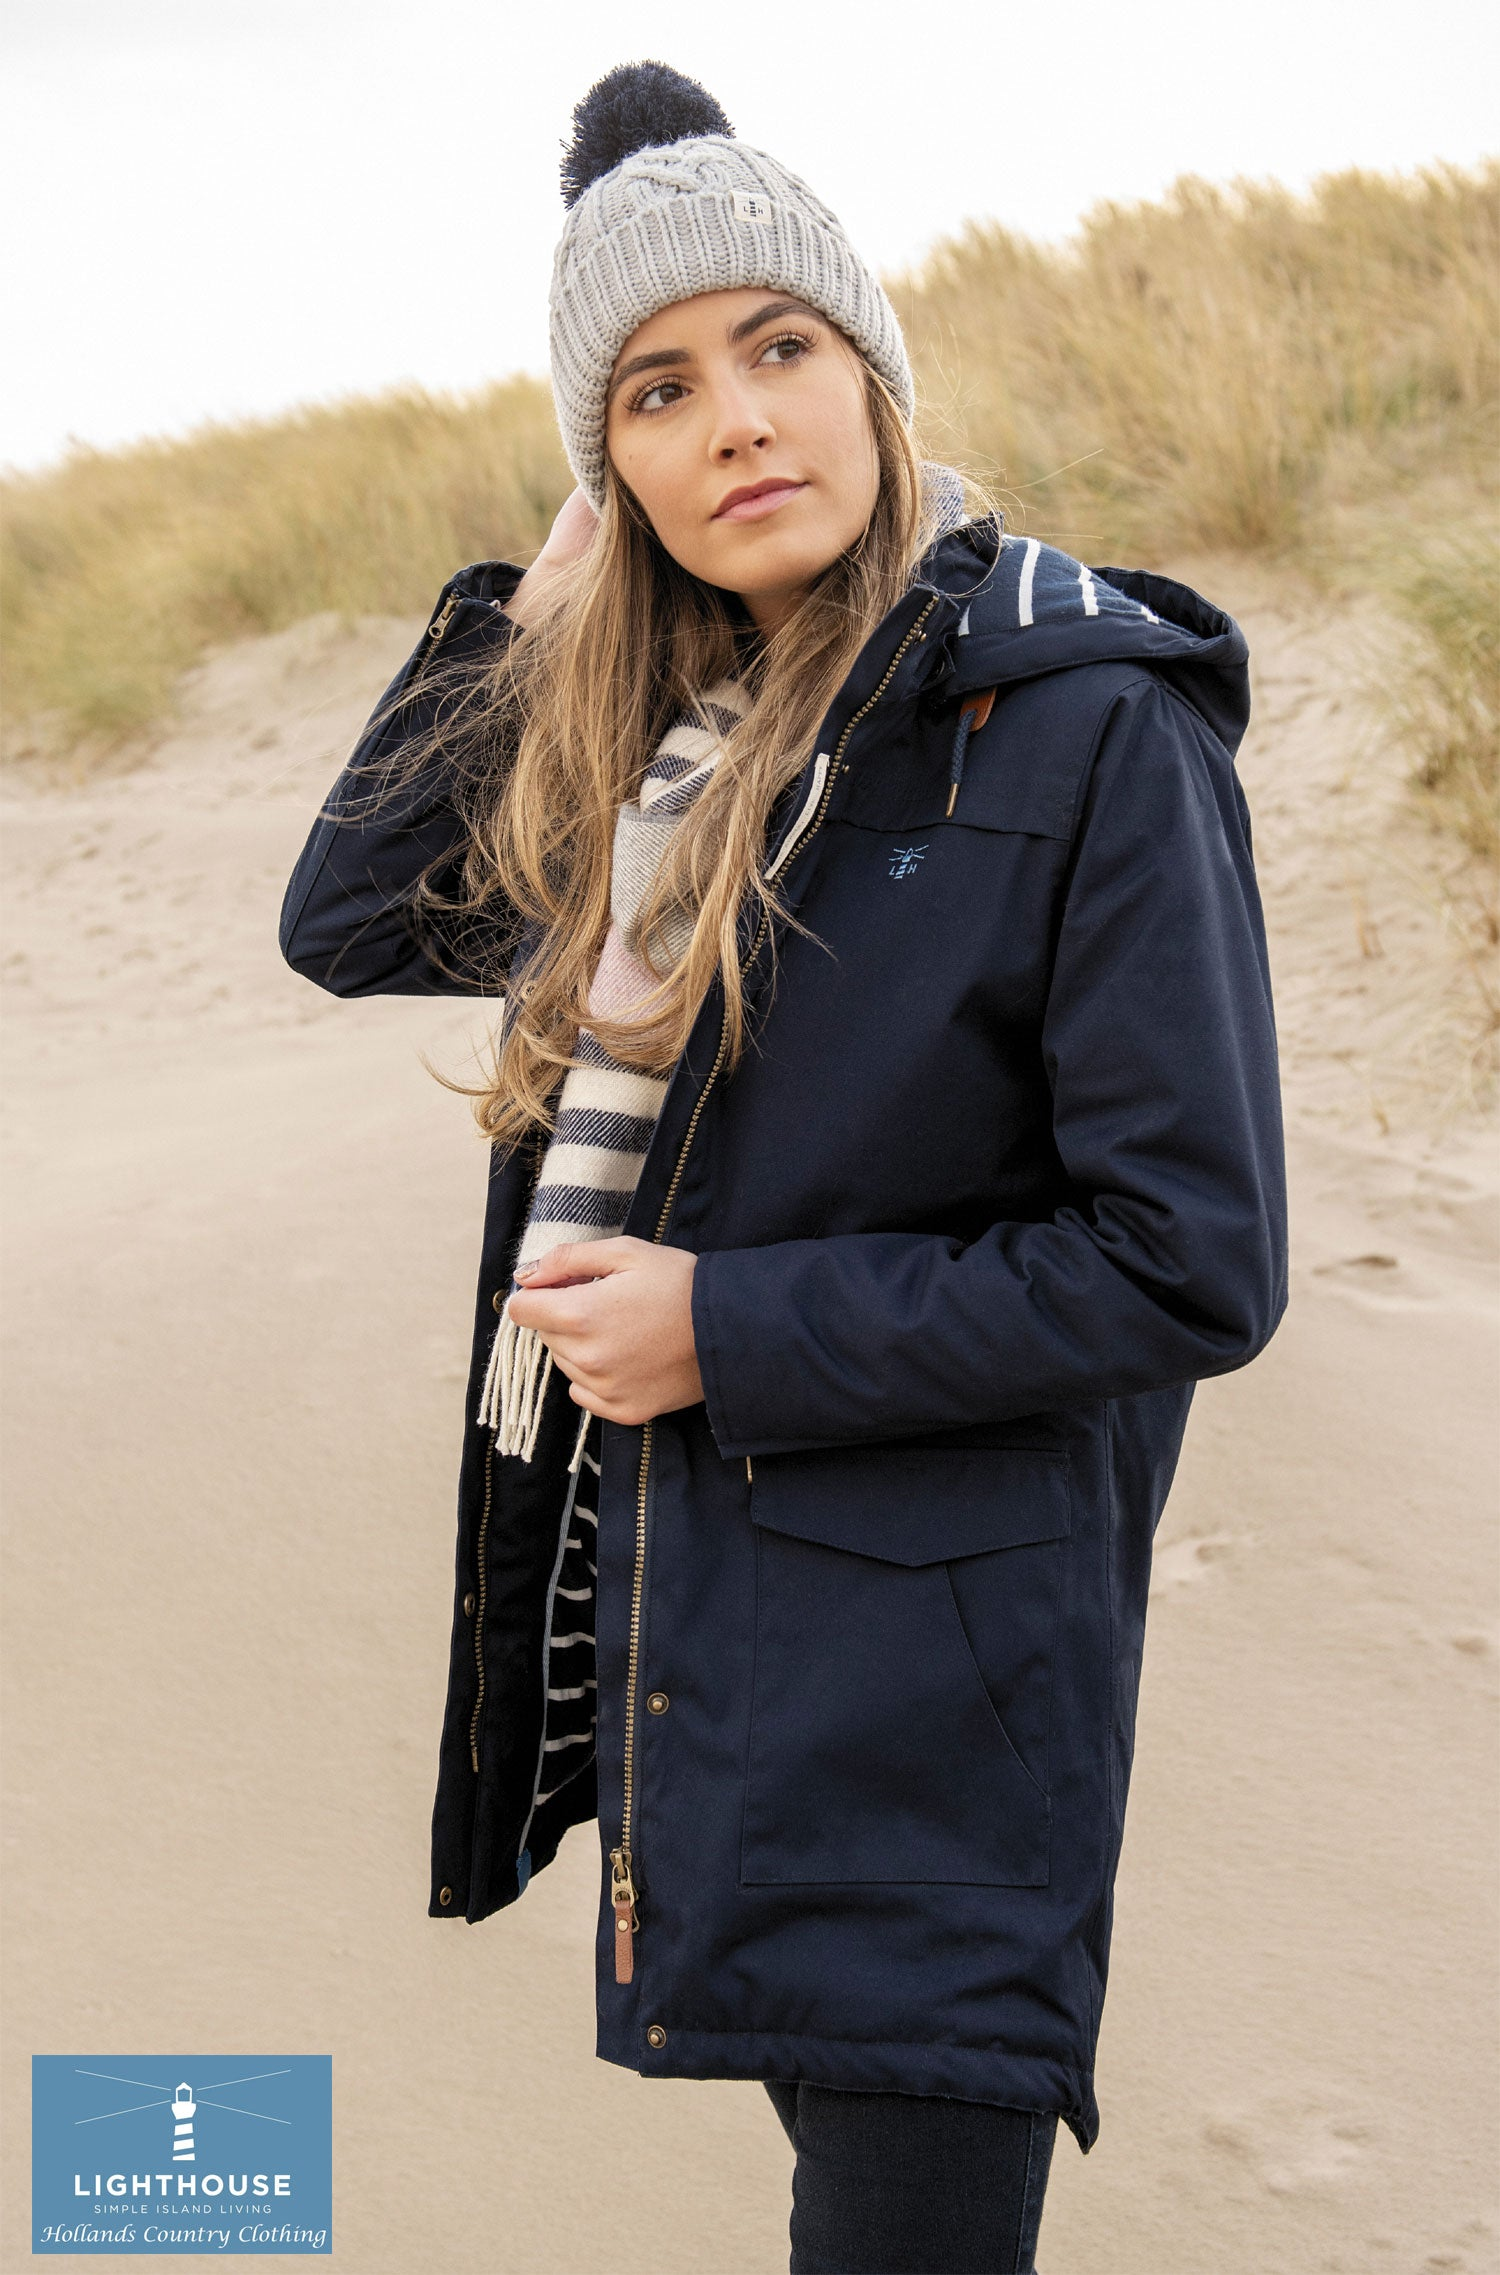 Waterproof Navy coat from Lighthouse